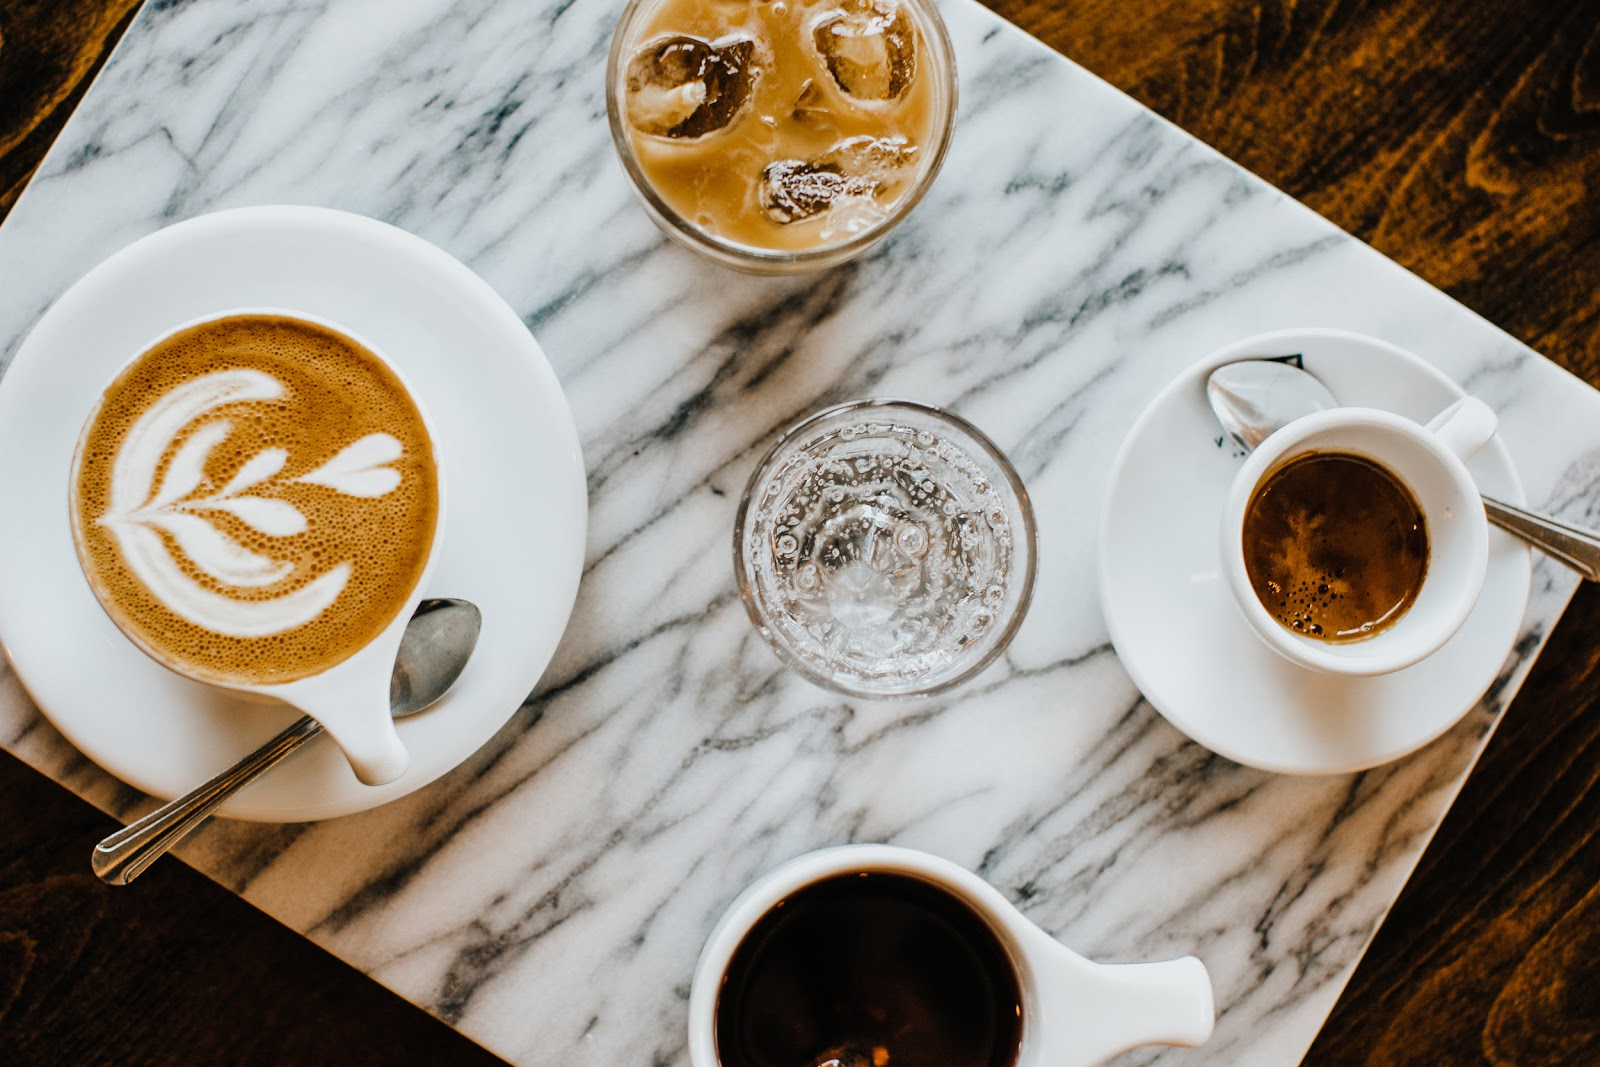 Grab a cup of coffee in Powell Ohio. This image shows a set of different coffees on a table.